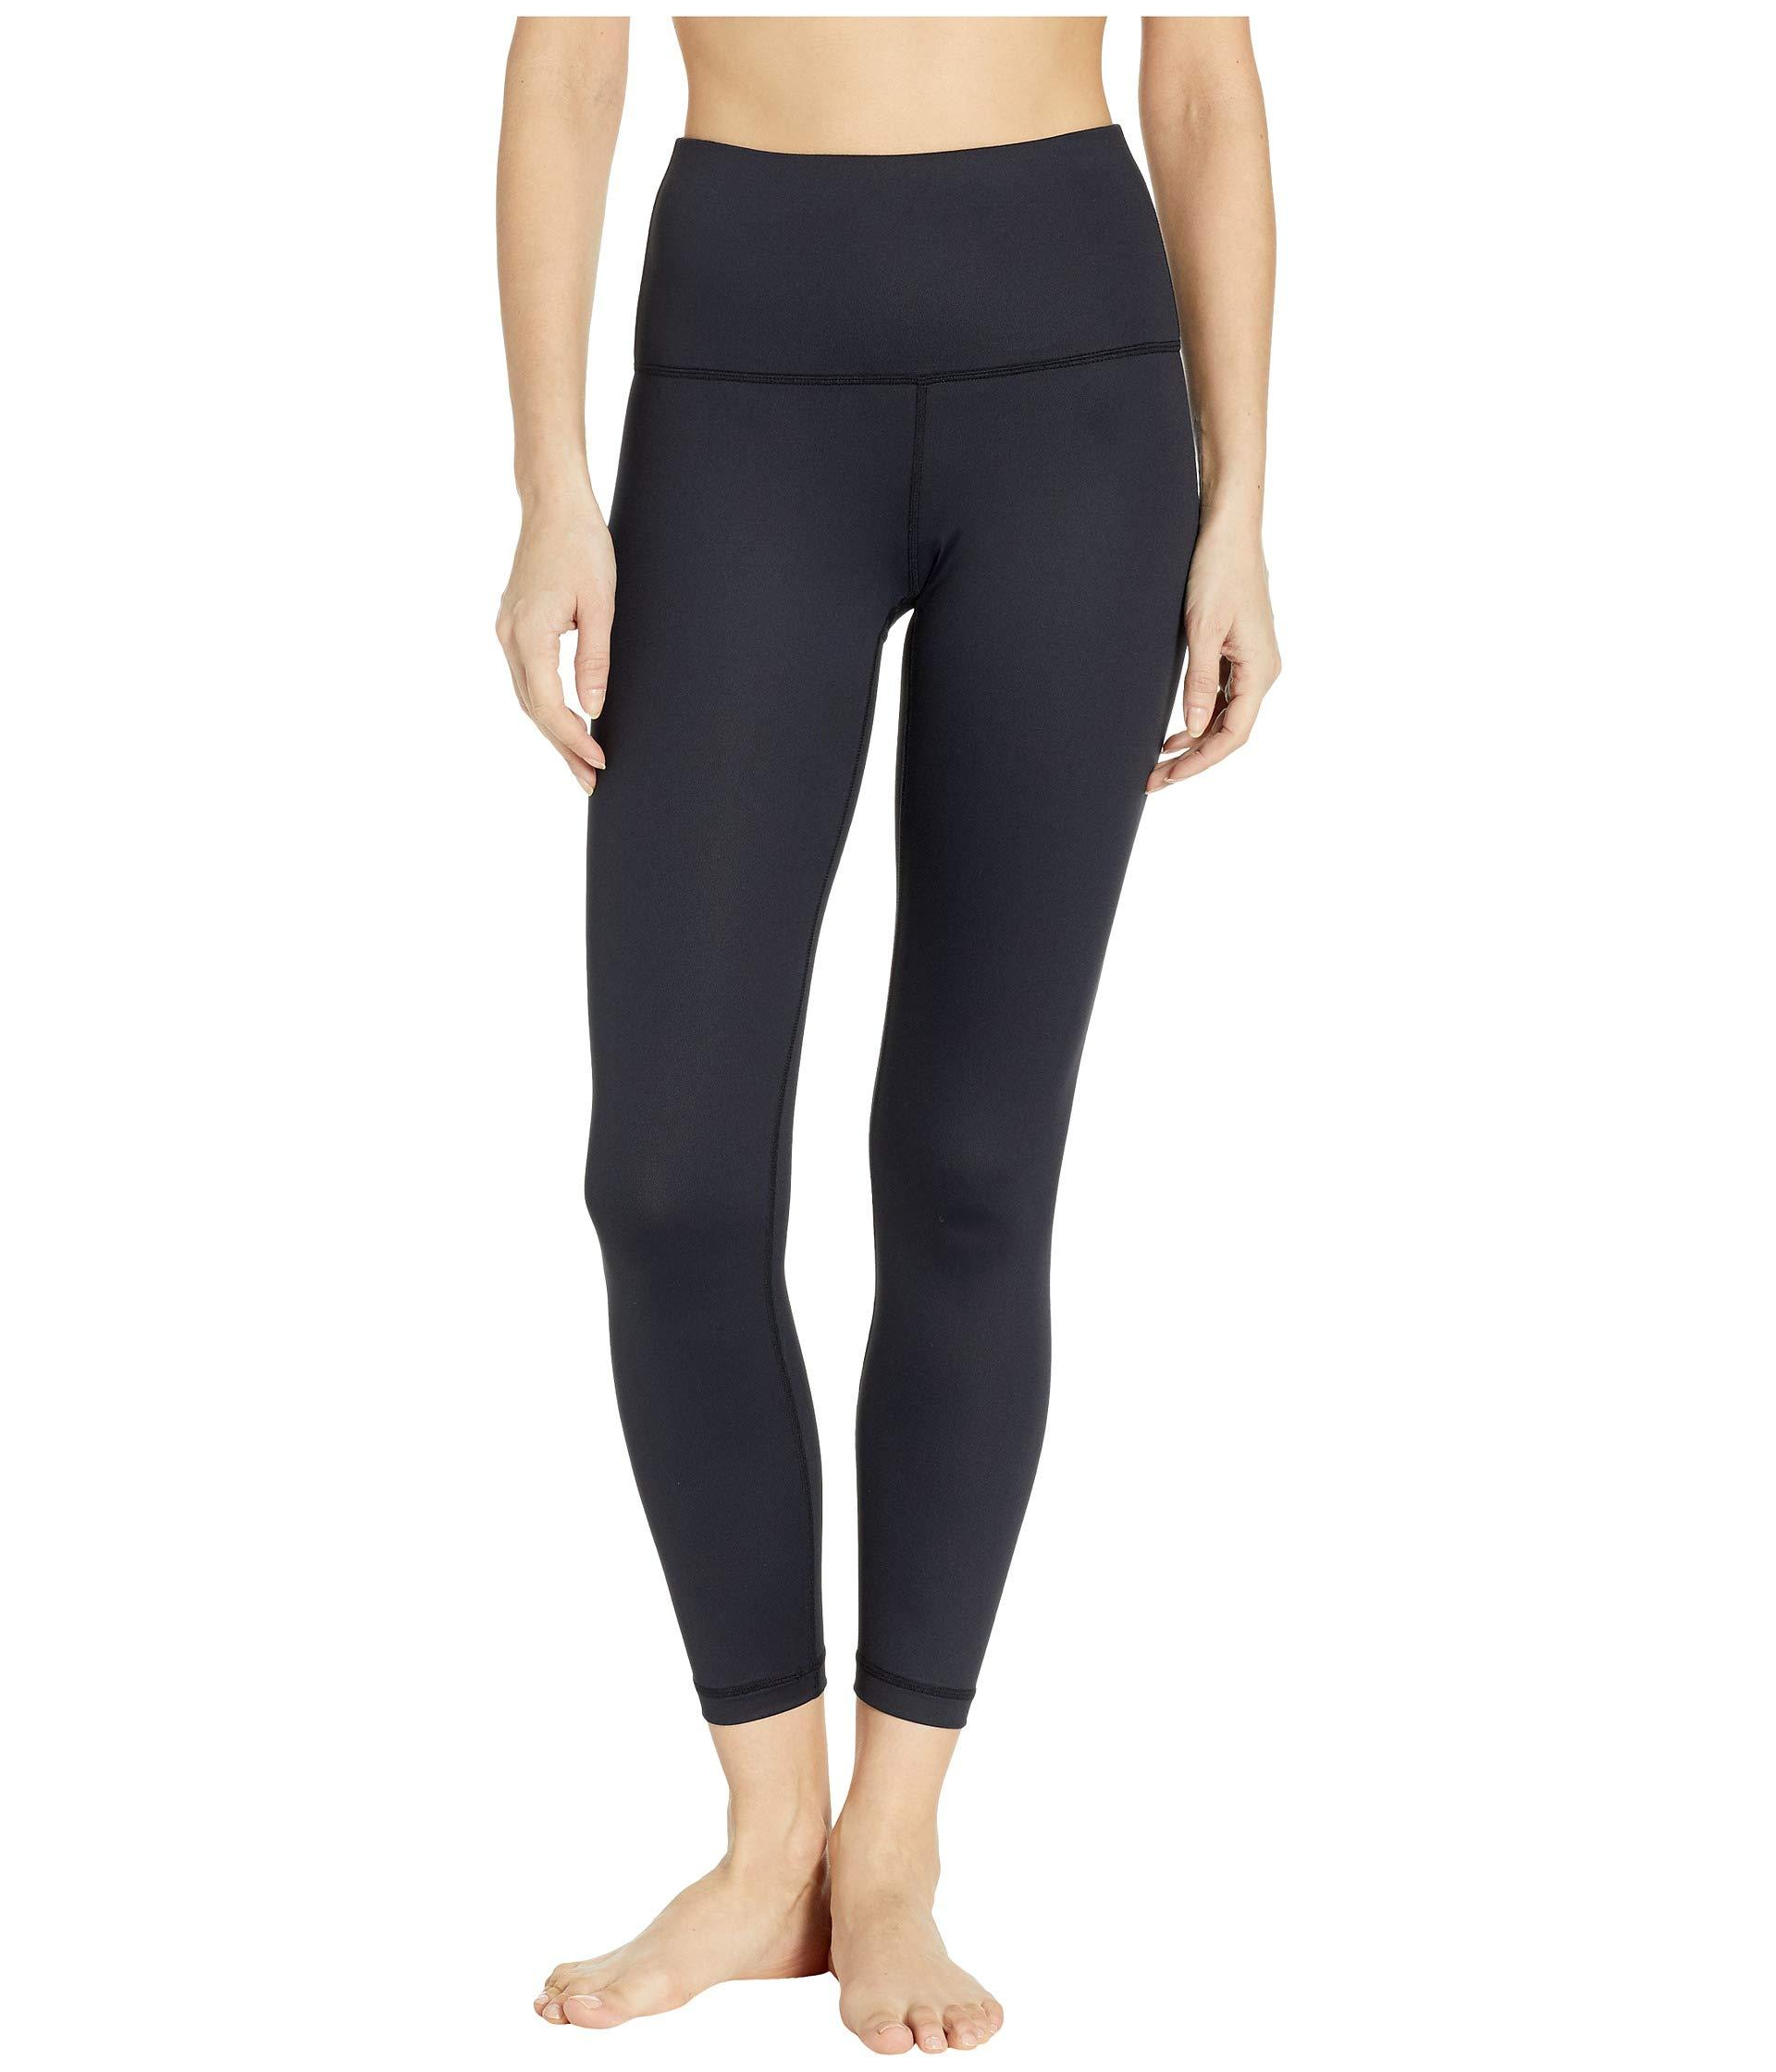 a51a73d20733e2 Lyst - Lolë Parisia High-waisted Ankle (black) Women's Workout in Black